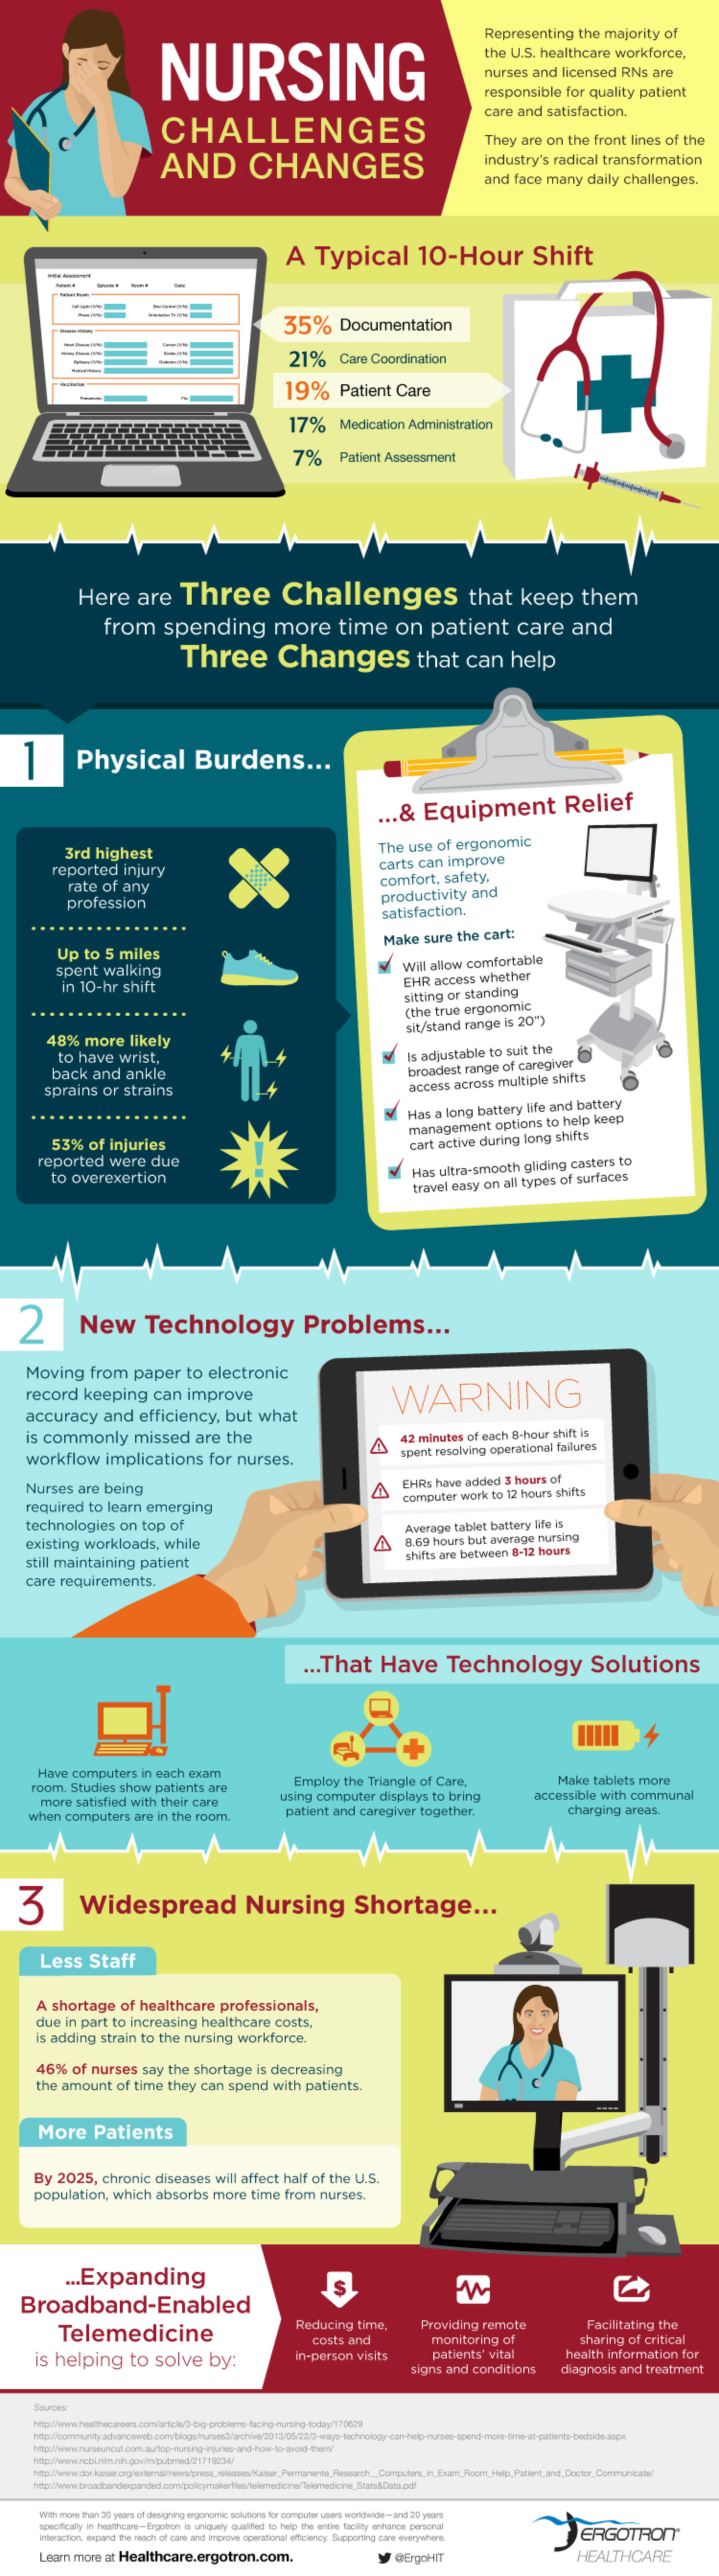 Nursing Challenges and Changes Infographic